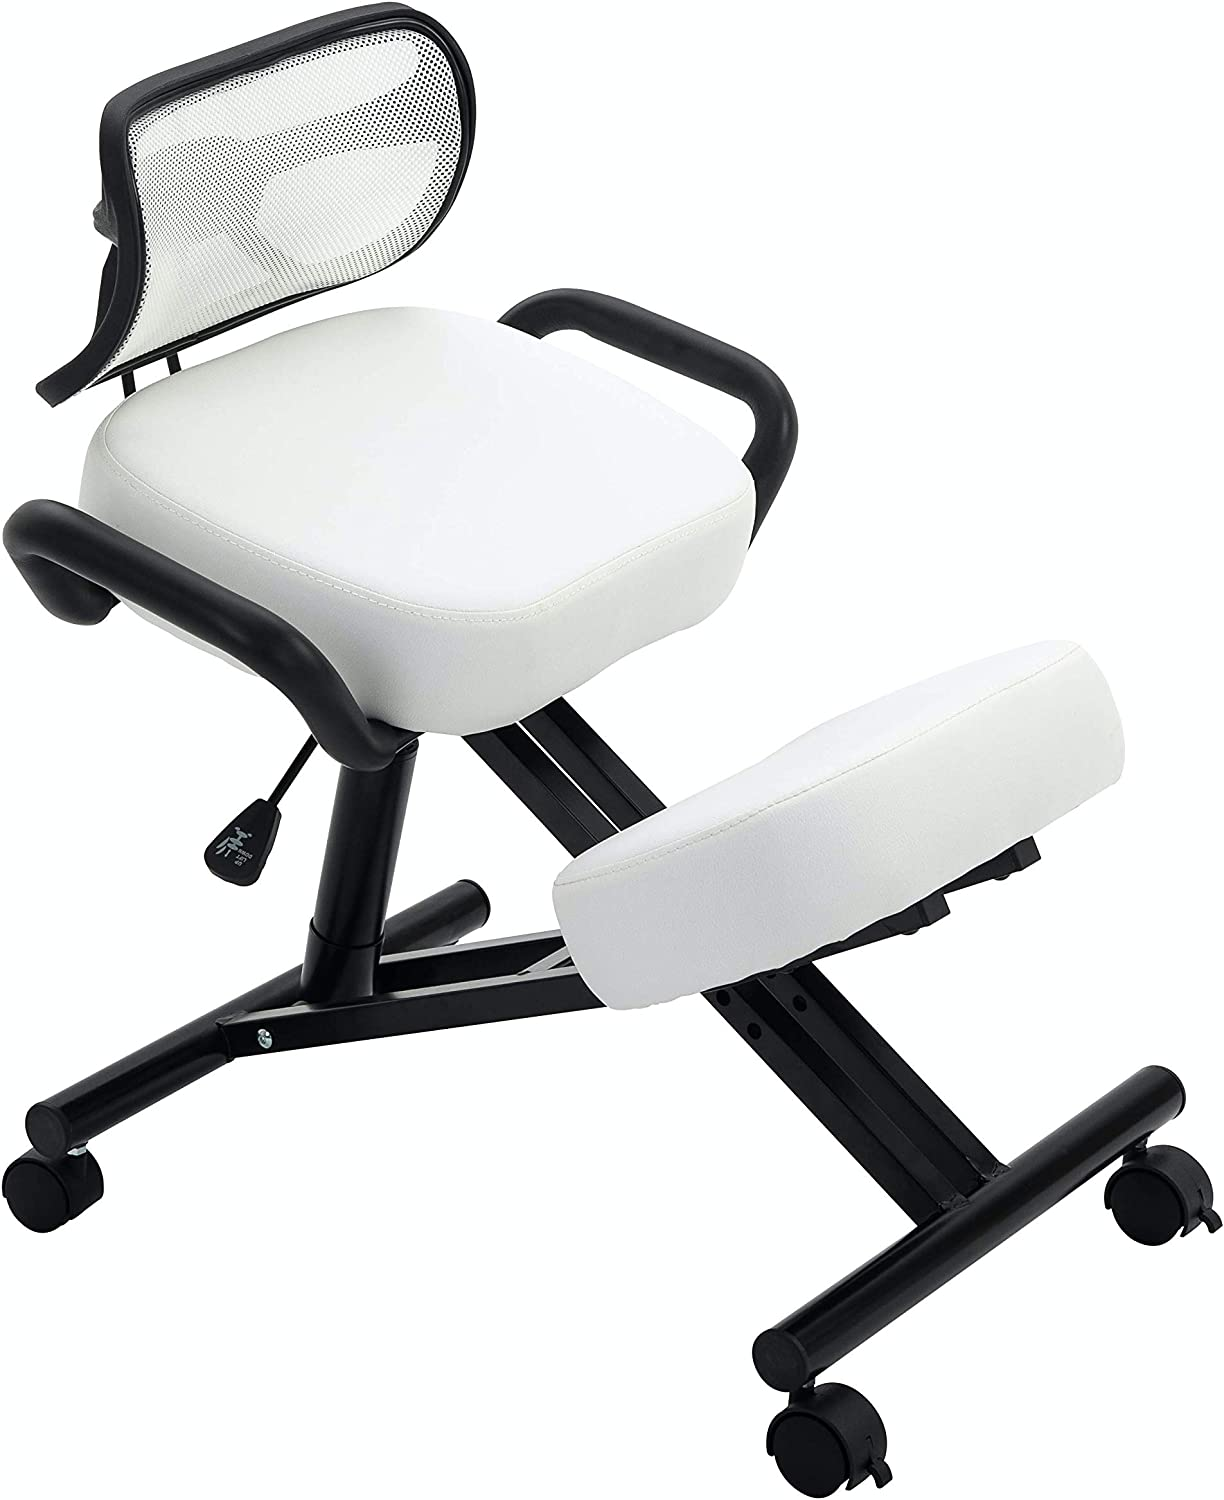 New! Stork (by Perfect Perch) - Beautiful Ergonomic Kneeling Chair with Leather Cushions, Back Support, Pneumatic Height Adjustment, Side Handles, Maximum Back Pain Relief, Home & Office